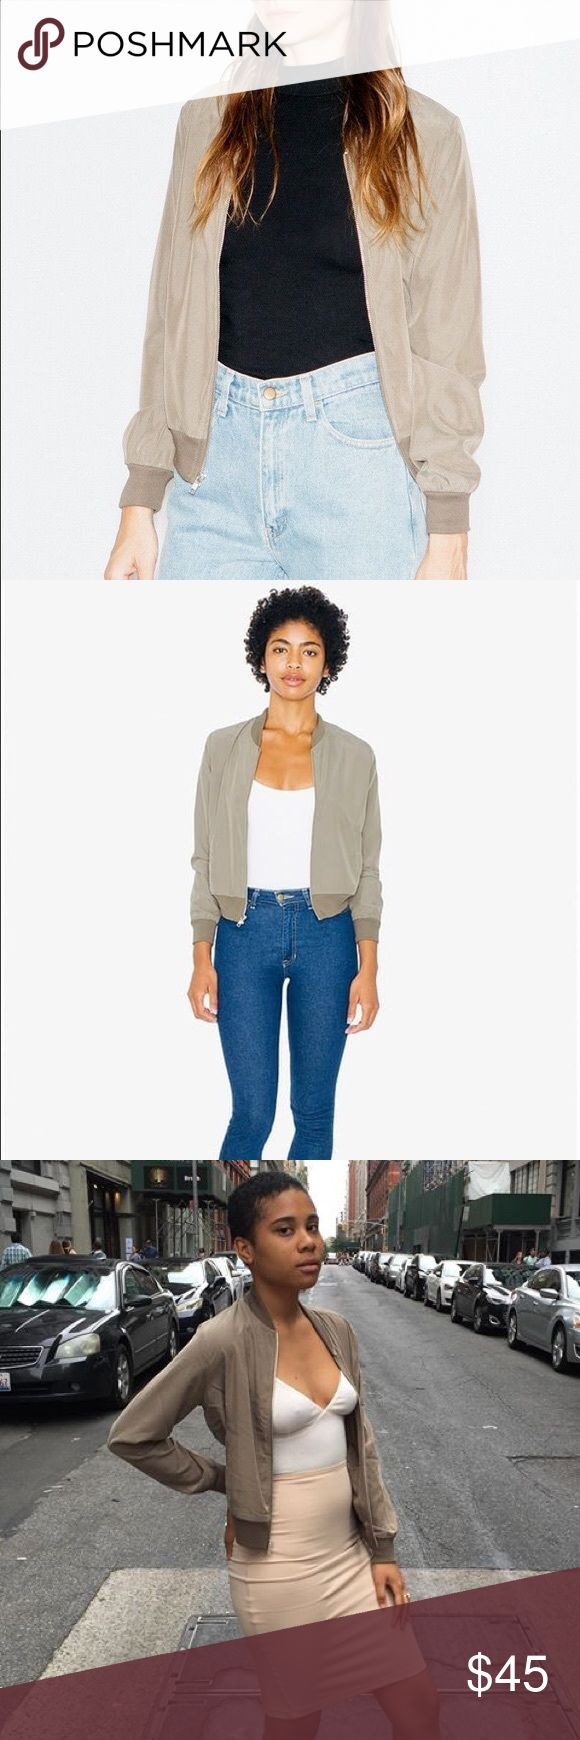 American apparel Amelia jacket One of AA best seller. very rare and hard to find right now. super pretty beige/green color. goes with everything in your closet. Only been worn once almost like brand-new in perfect condition American Apparel Jackets & Coats